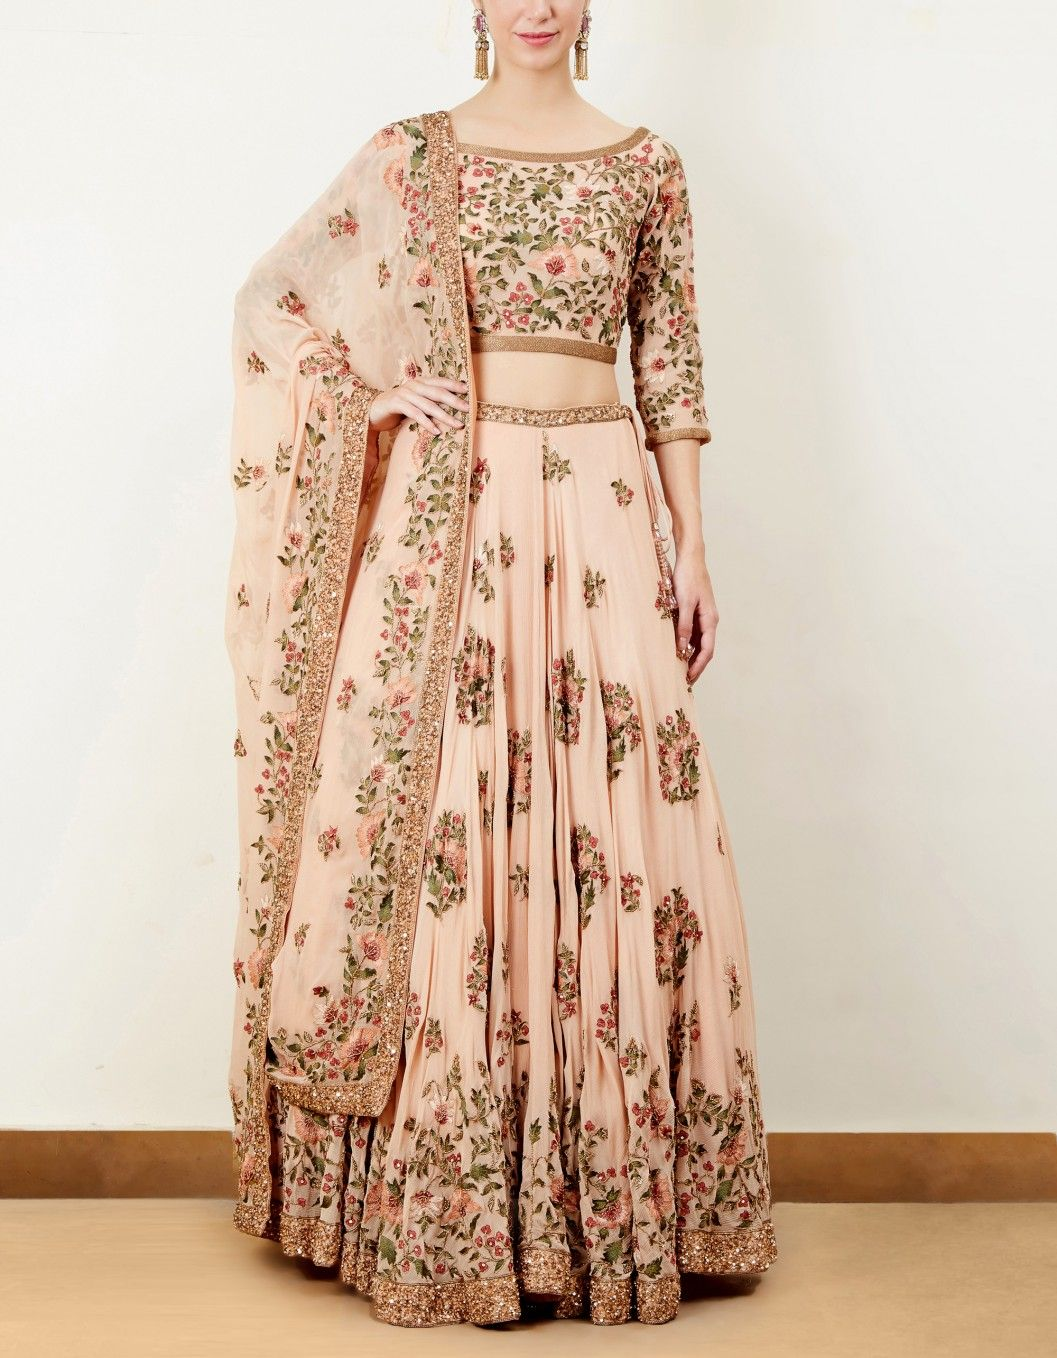 c110d4a00b Buy Blush Thread Embroidered Lehenga Set by NS BY NAKUL SEN Available at  Ogaan Online Shop - Romantic Pink Floral Lehenga